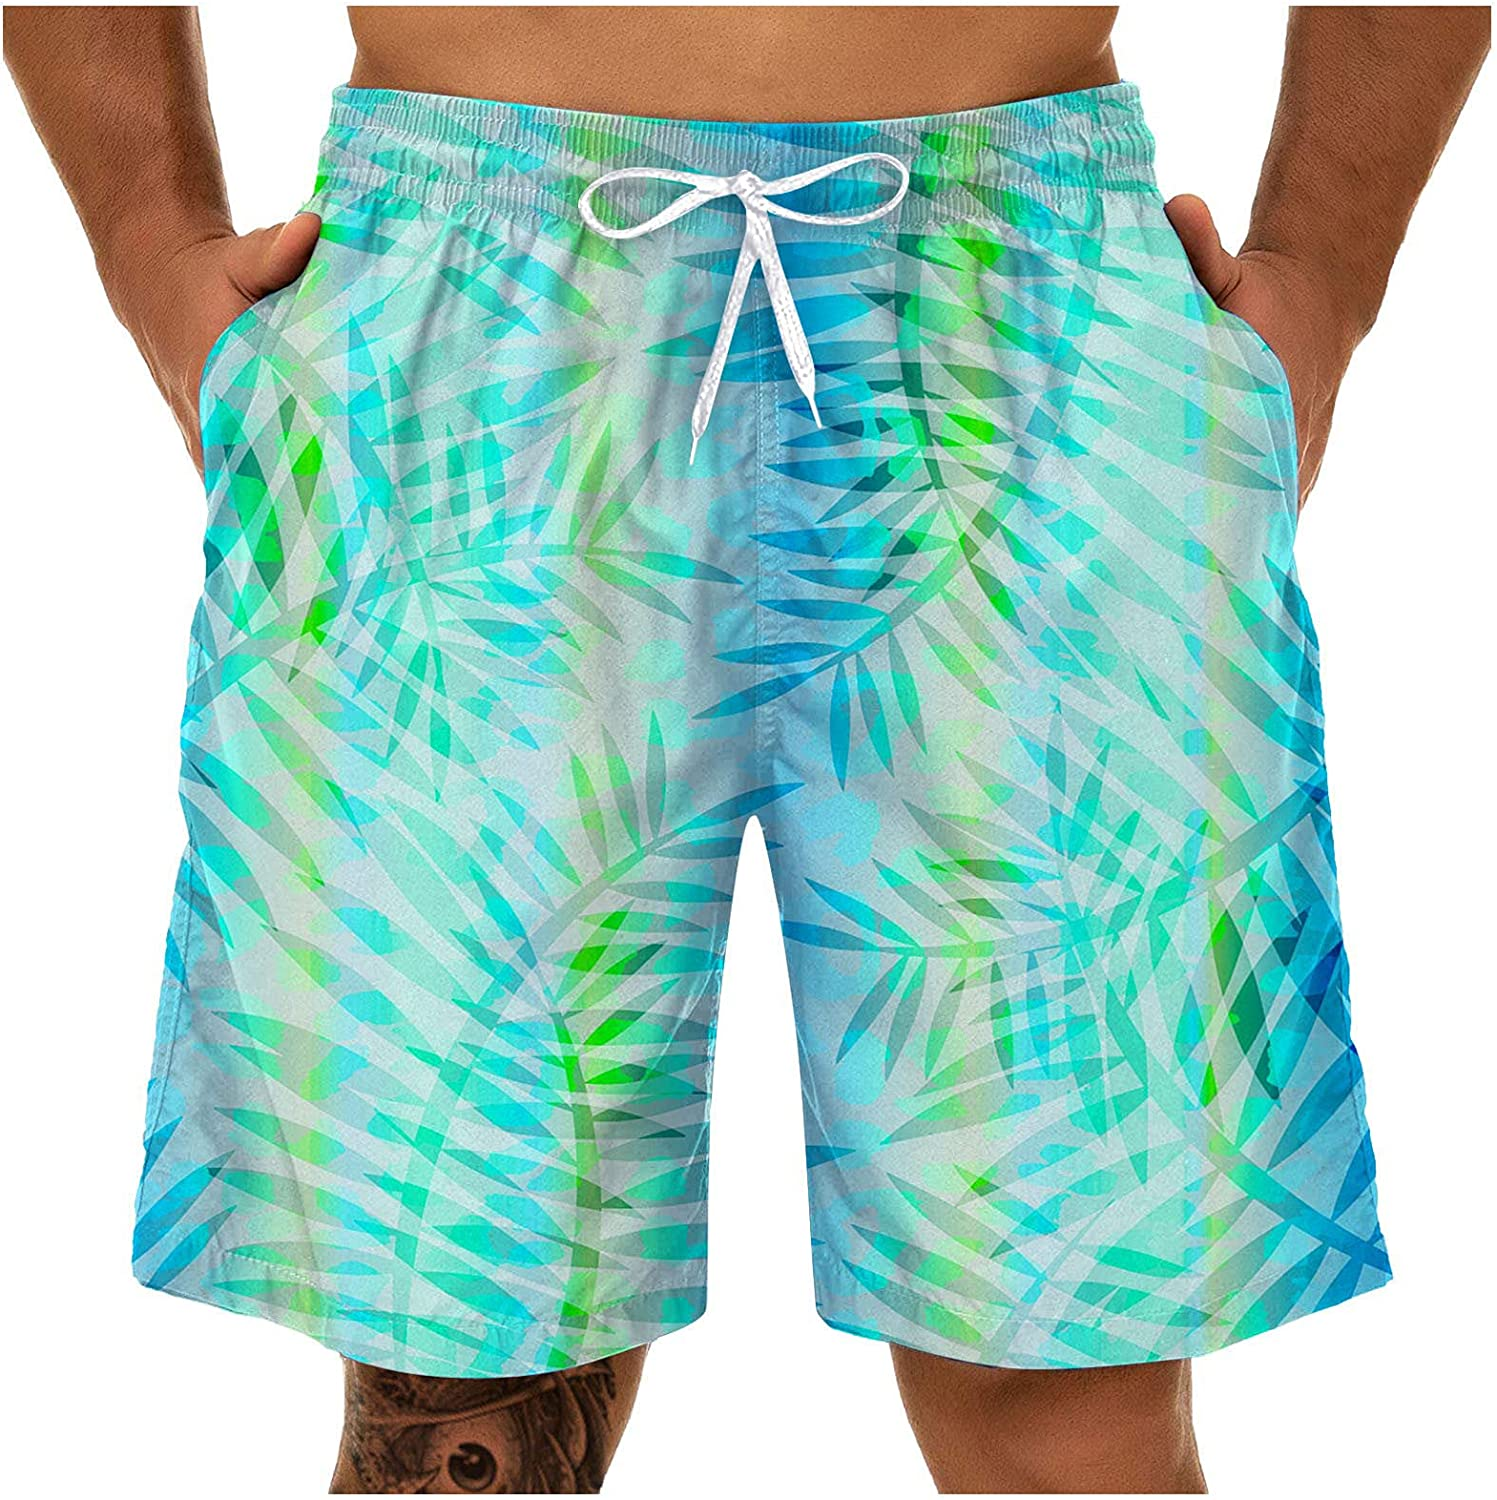 FUNEY Swim Shorts for Mens 3D Dinosaur Print Funny Swimwear Bathing Suits Swim Trunks Quick Dry Board Shorts with Pockets